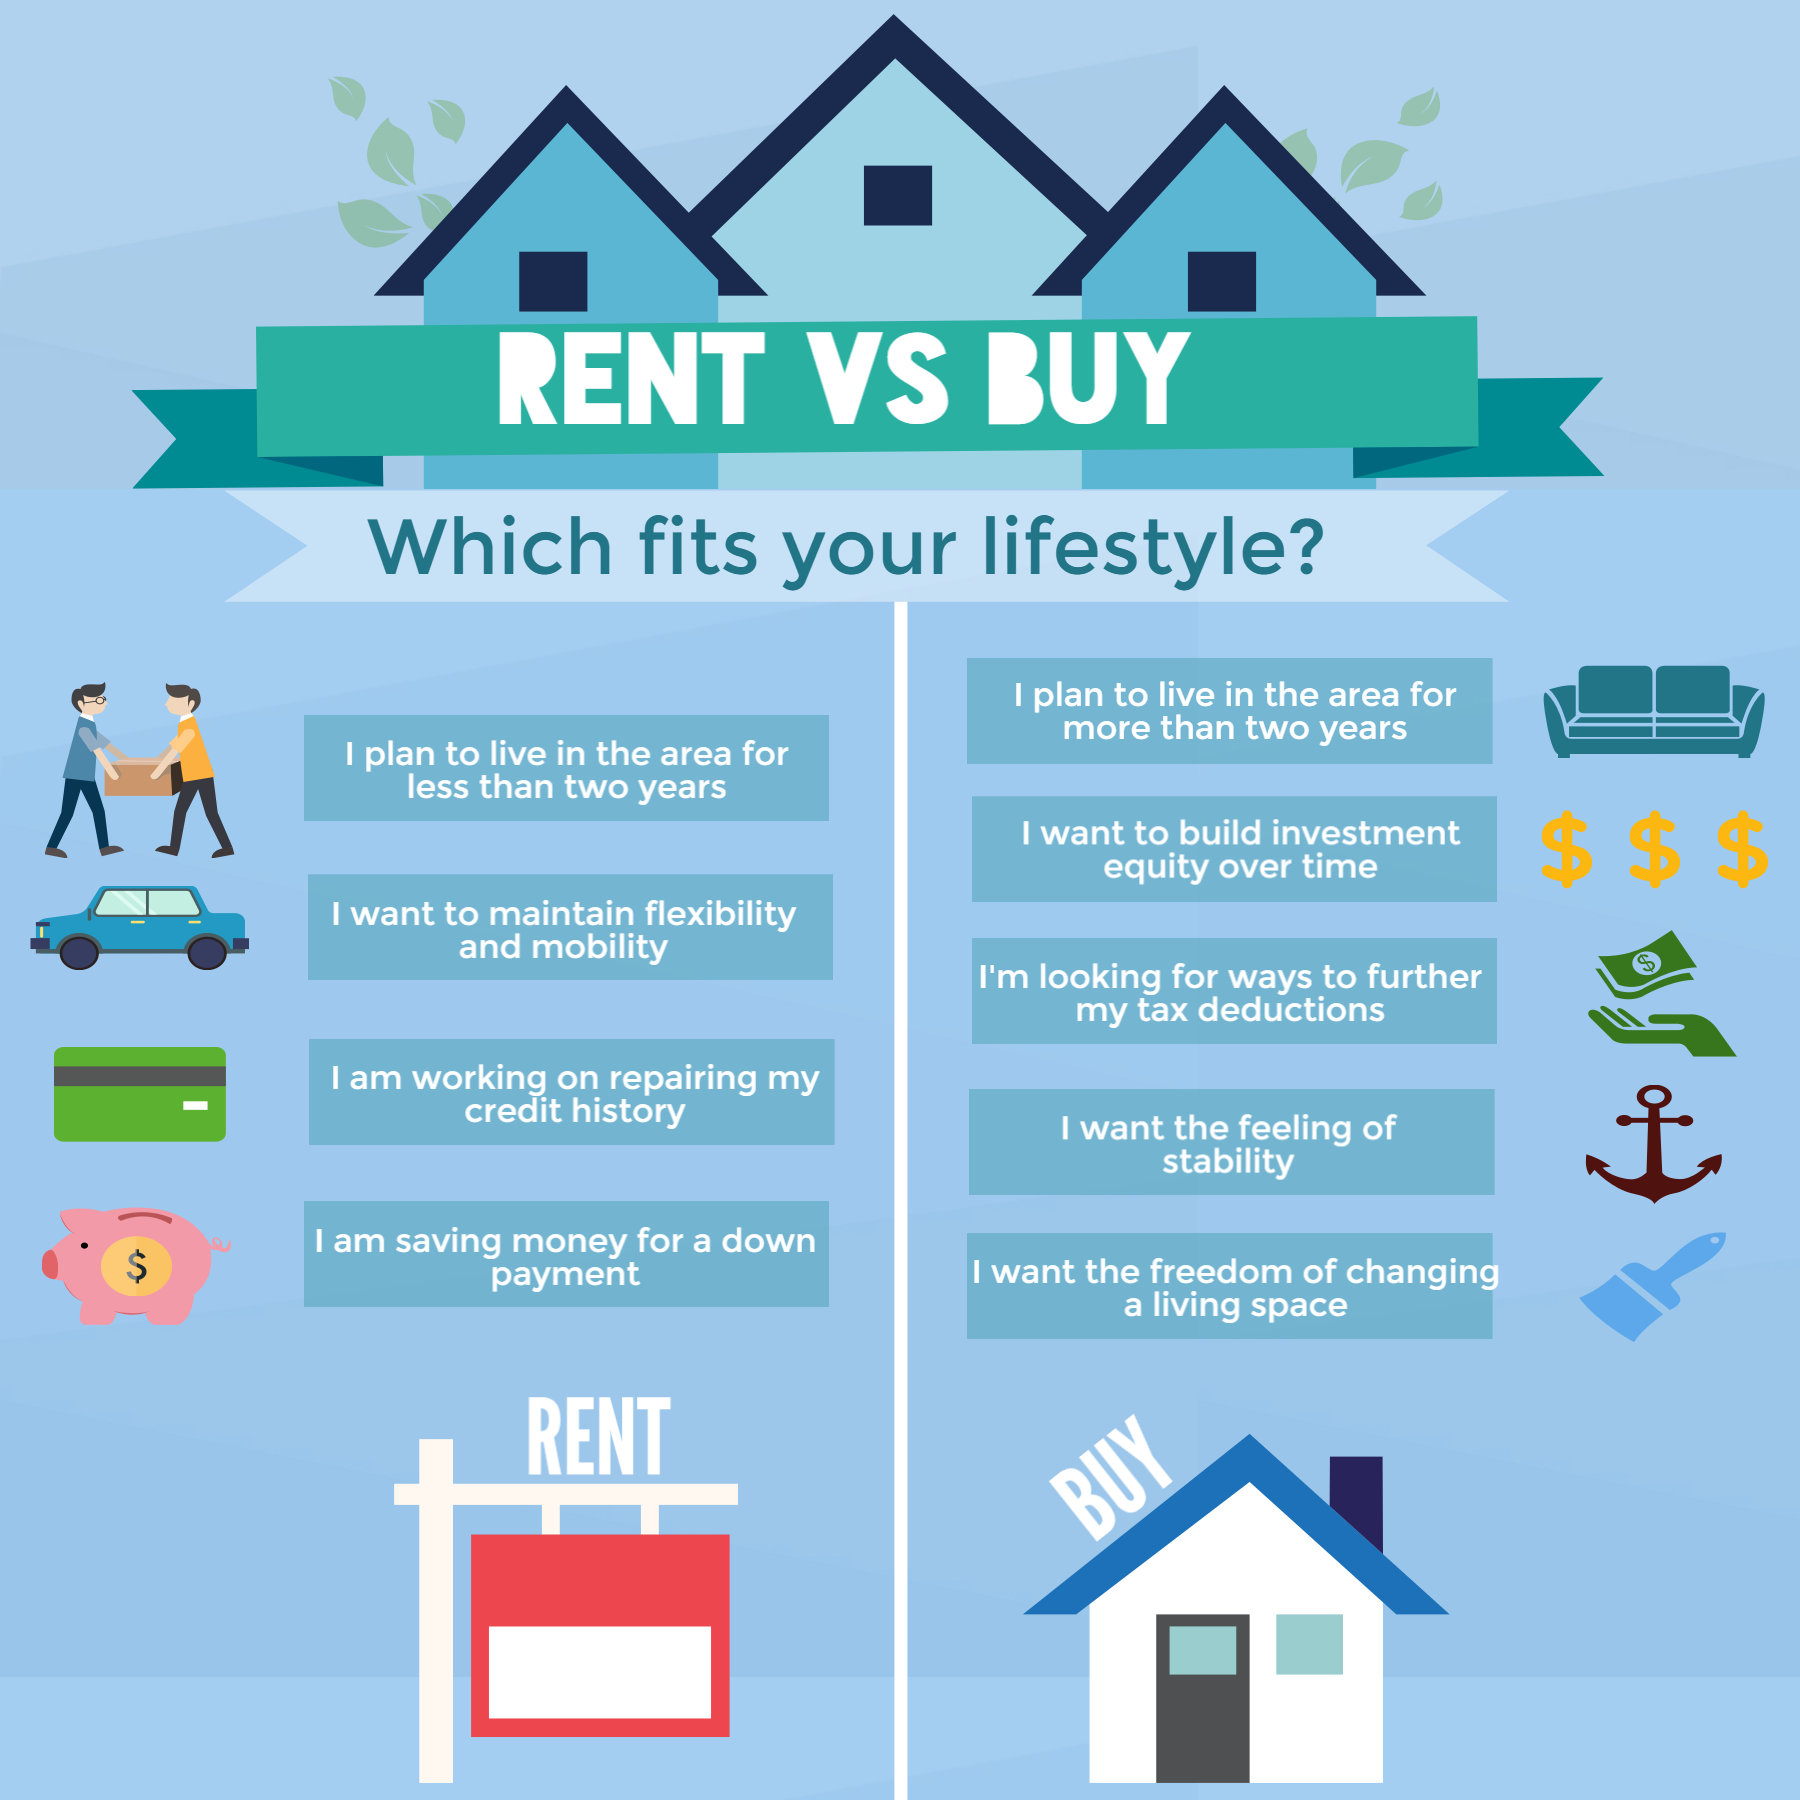 Rent vs purchase hab immer Benefits of buying an apartment